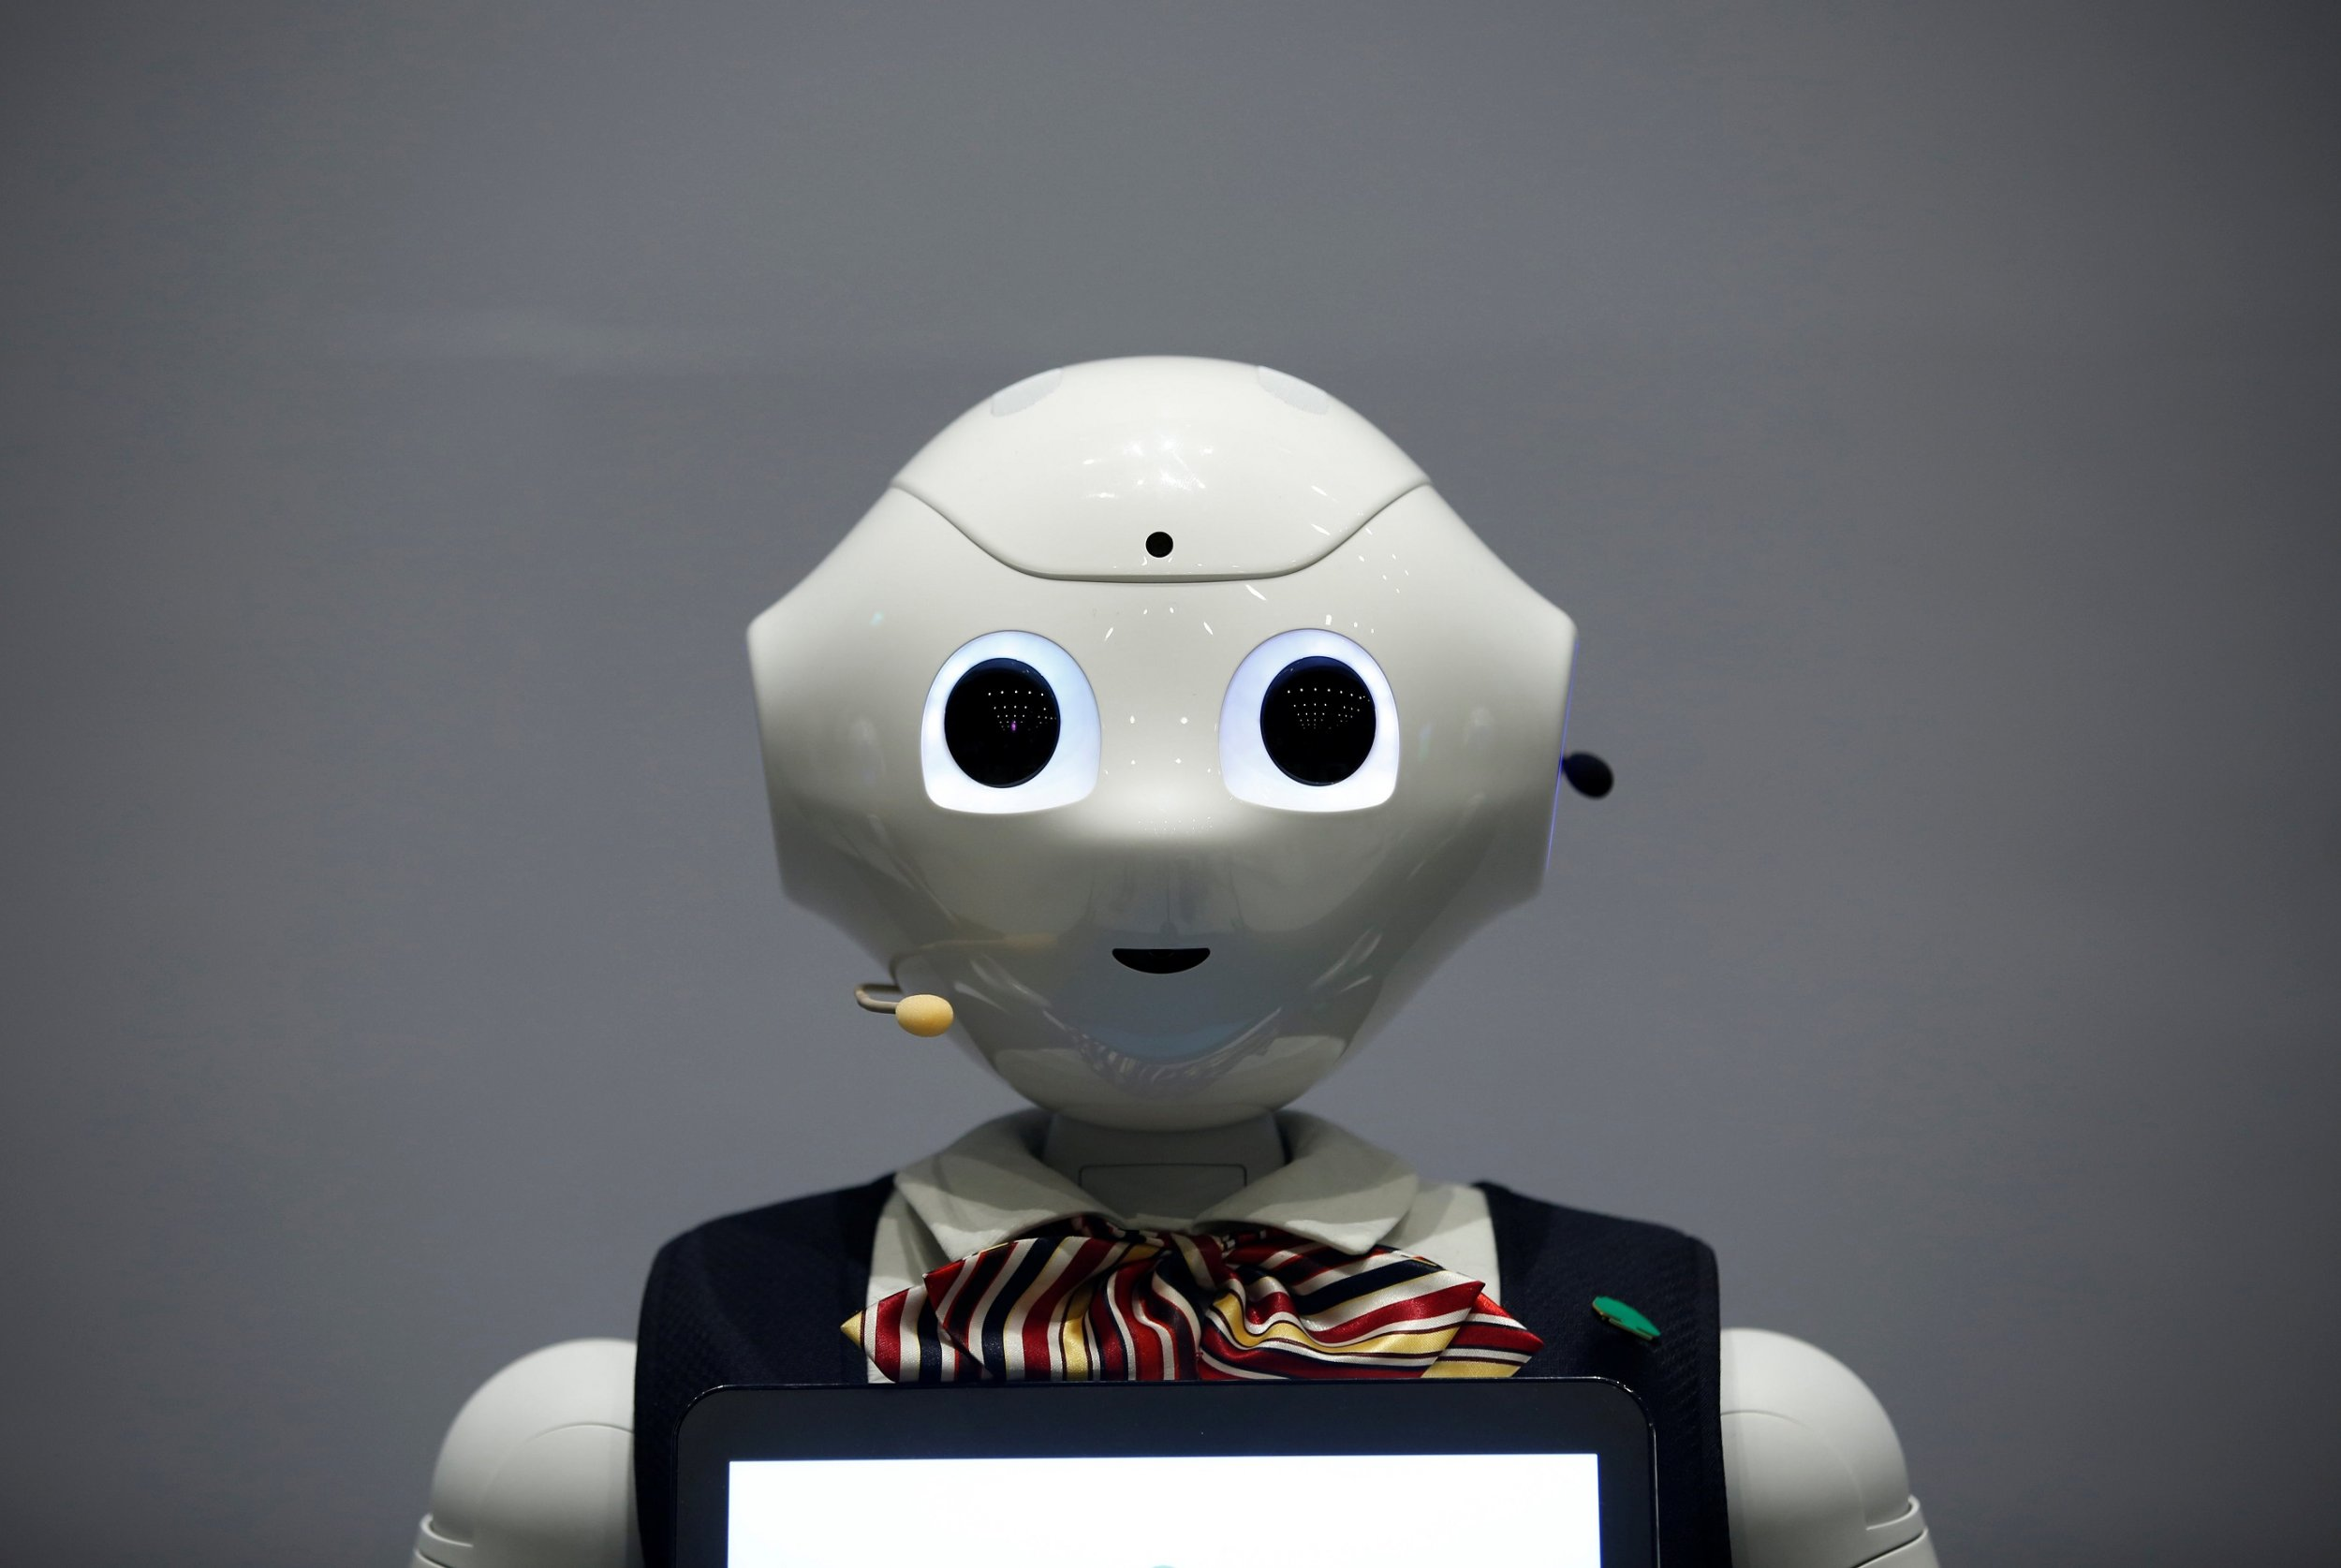 Pepper by SoftBank. Robots could be hacked, says IOActive